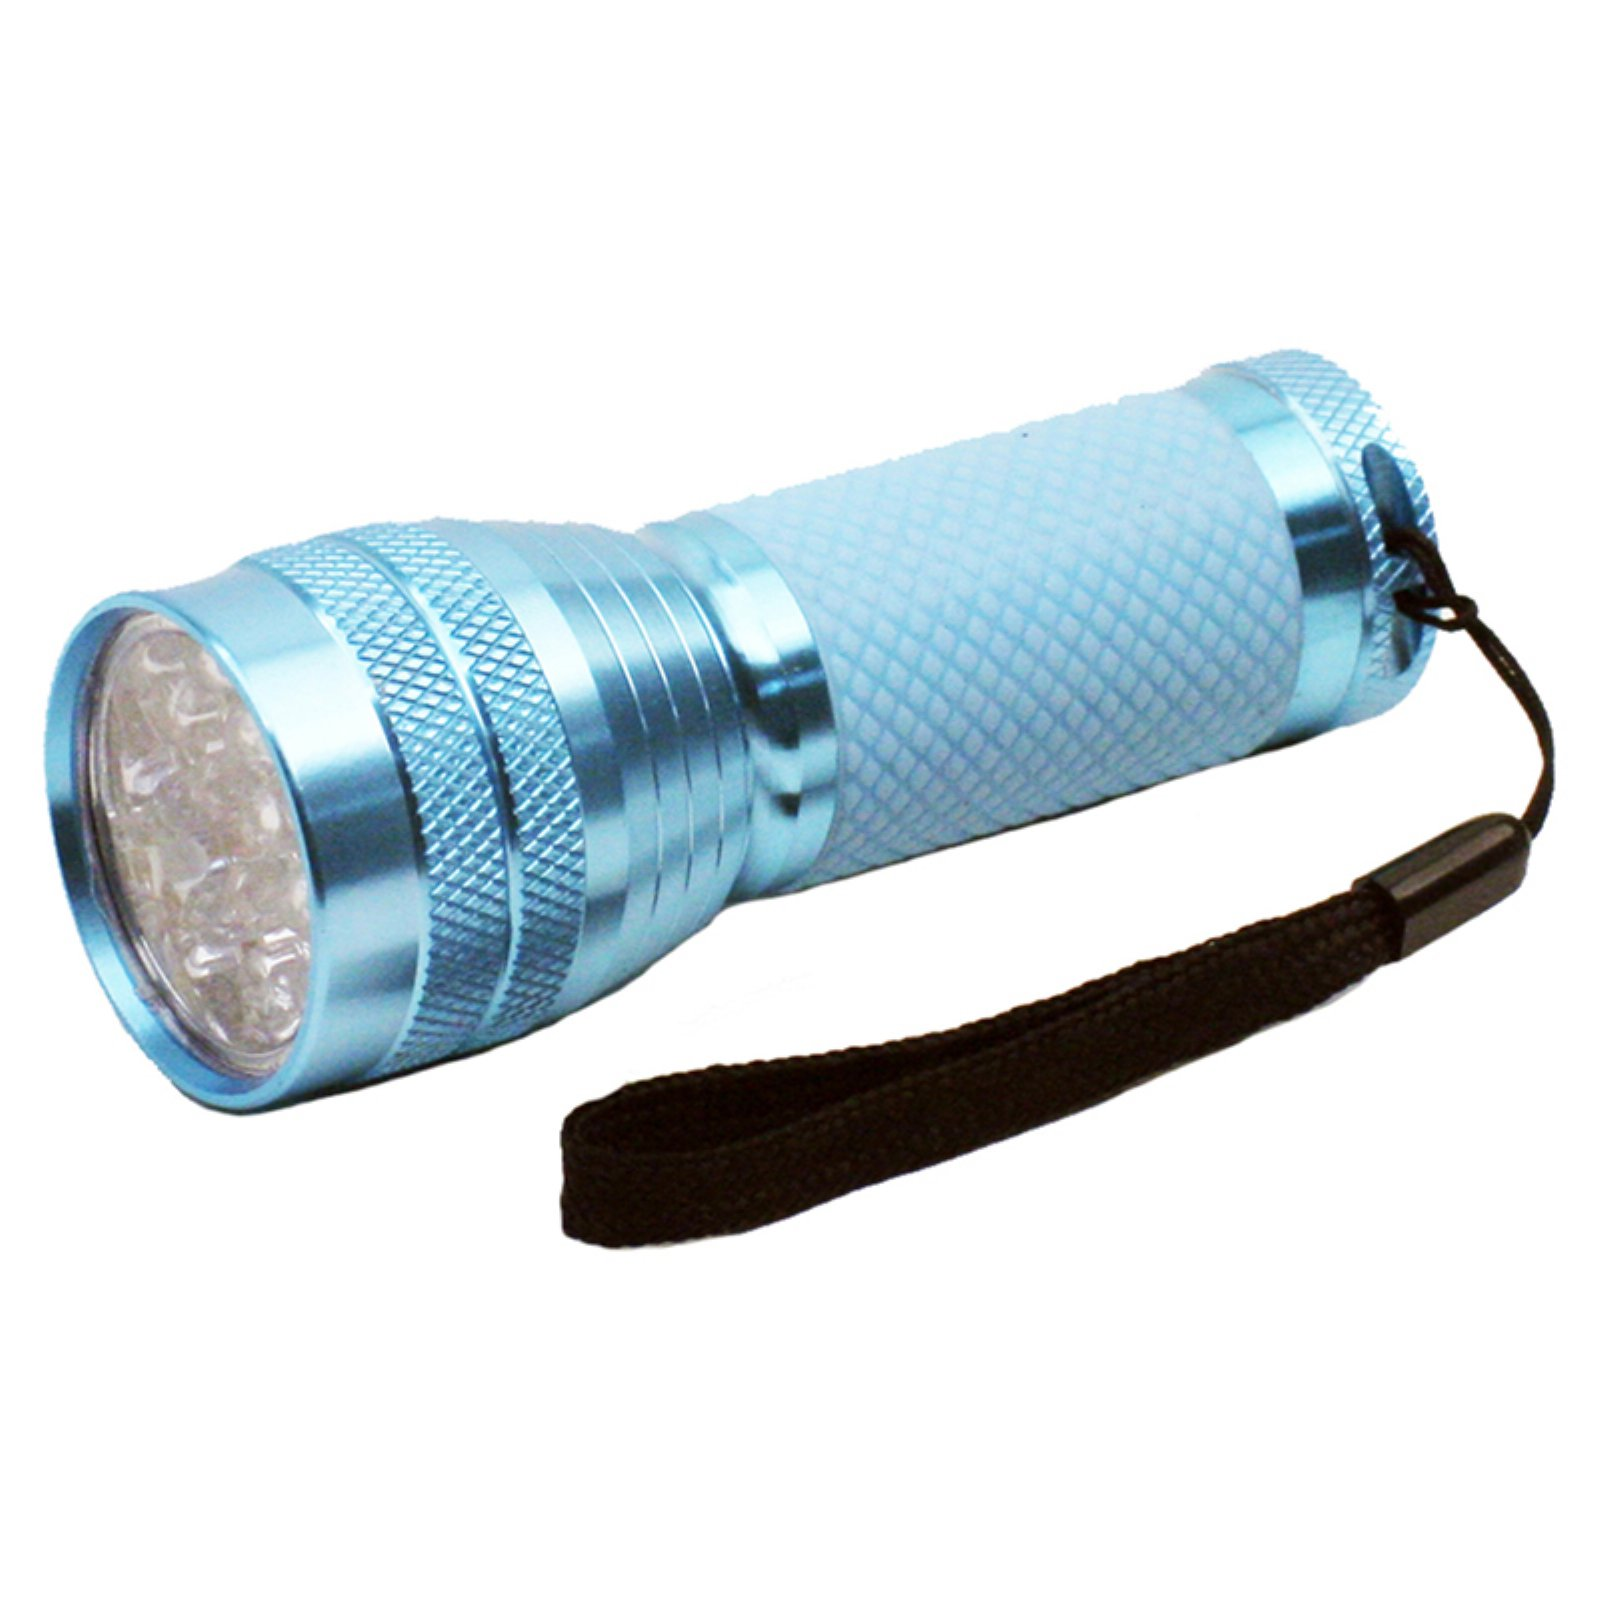 Dorcy 35-Lumen Weather Resistant Glow-In-The-Dark LED Flashlight with Lanyard and Aluminum Construction, Assorted Colors (41-4254)